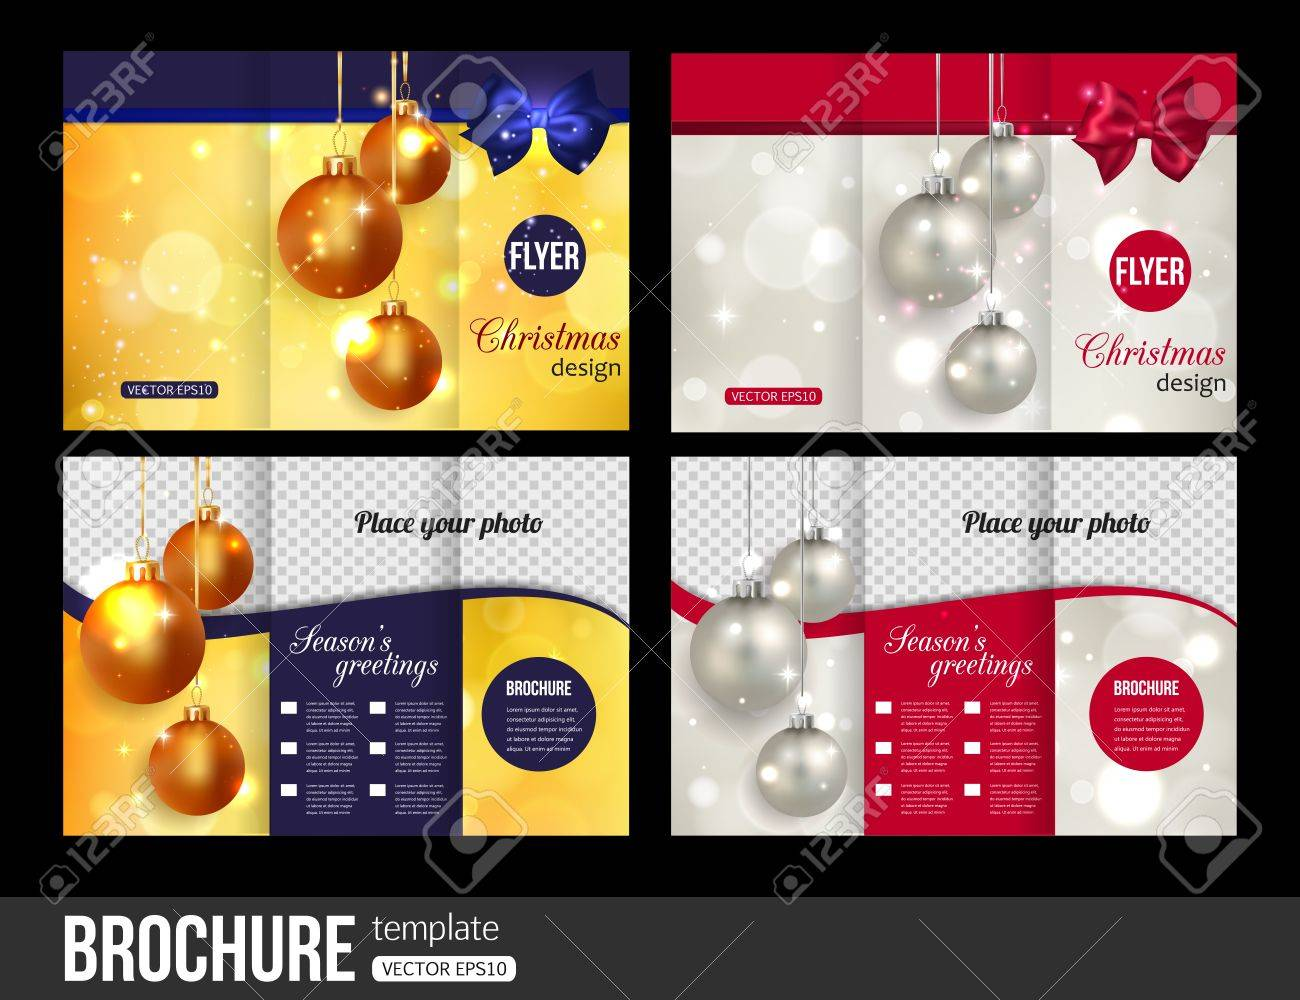 christmas trifold brochure templates abstract flyer design christmas trifold brochure templates abstract flyer design xmas bows blurred bokeh lights and